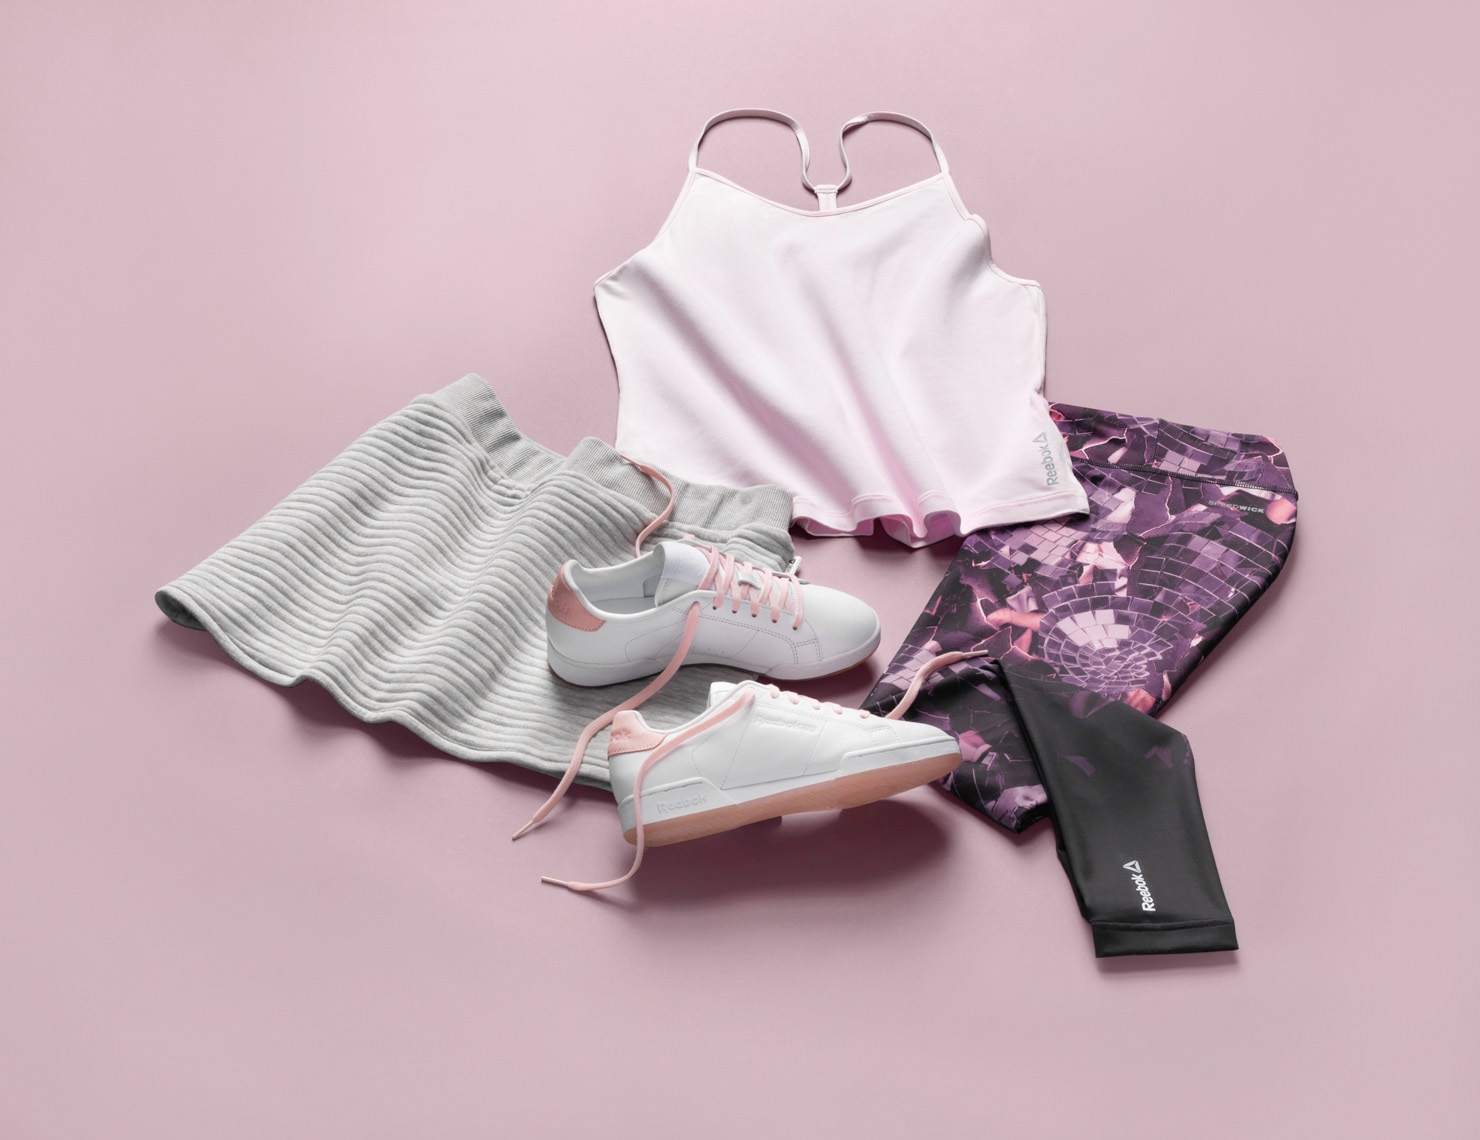 womens workout clothes on a pink background